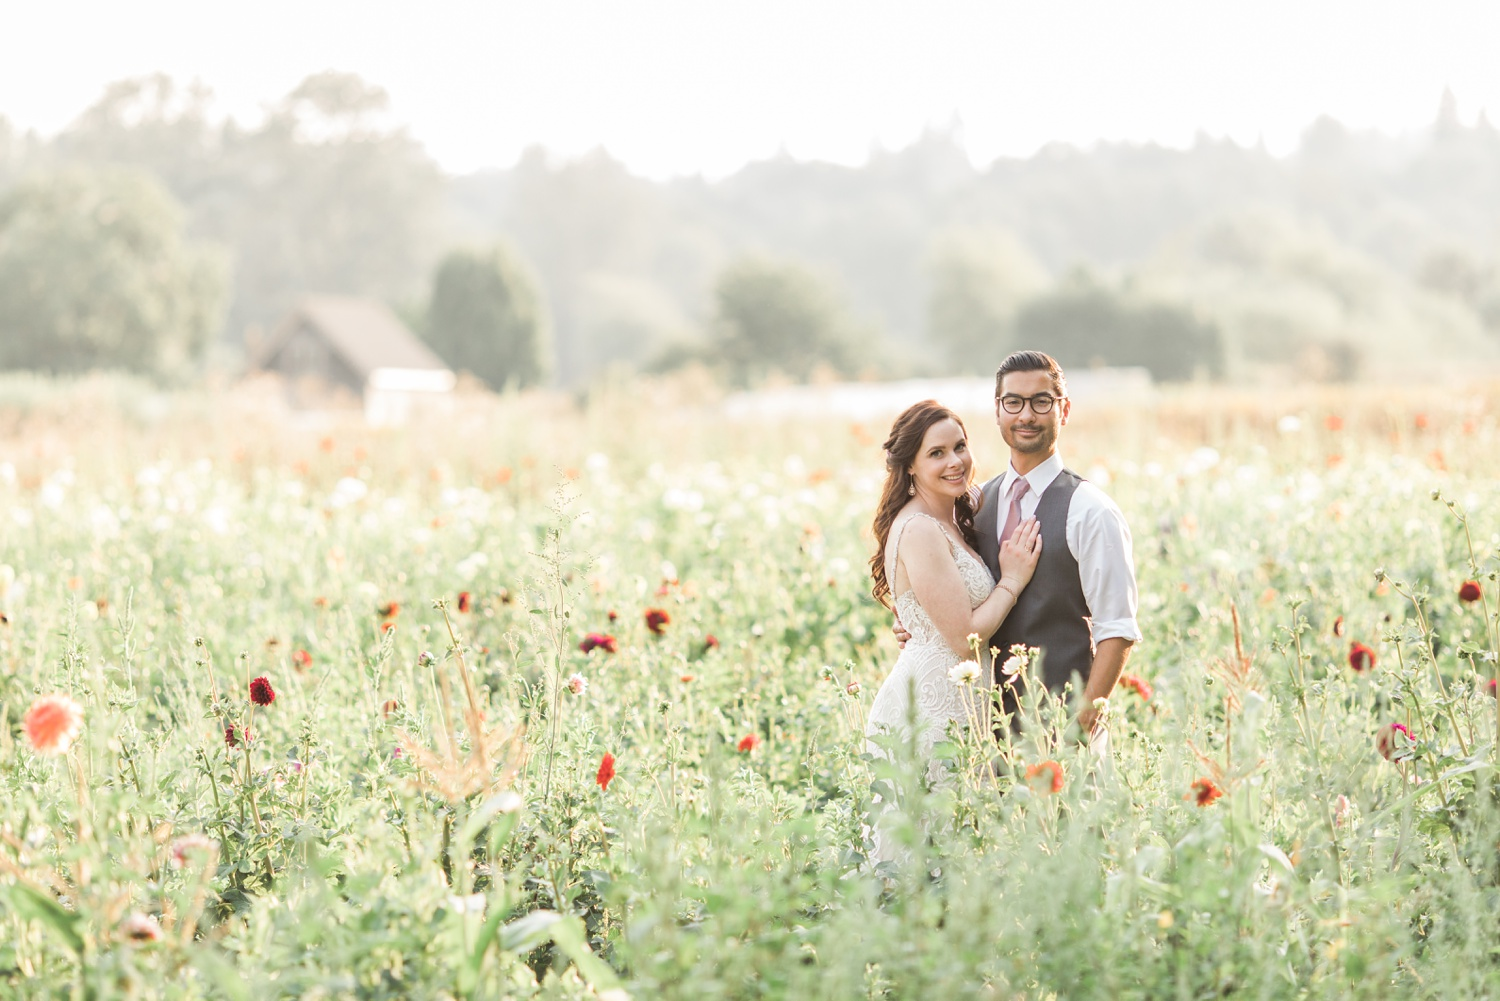 A bride and groom embrace while standing in a field of flowers before their wedding at Woodland Meadow Farms in Snohomish, a wedding venue near Seattle, WA. | Joanna Monger Photography | Seattle & Snohomish Photographer